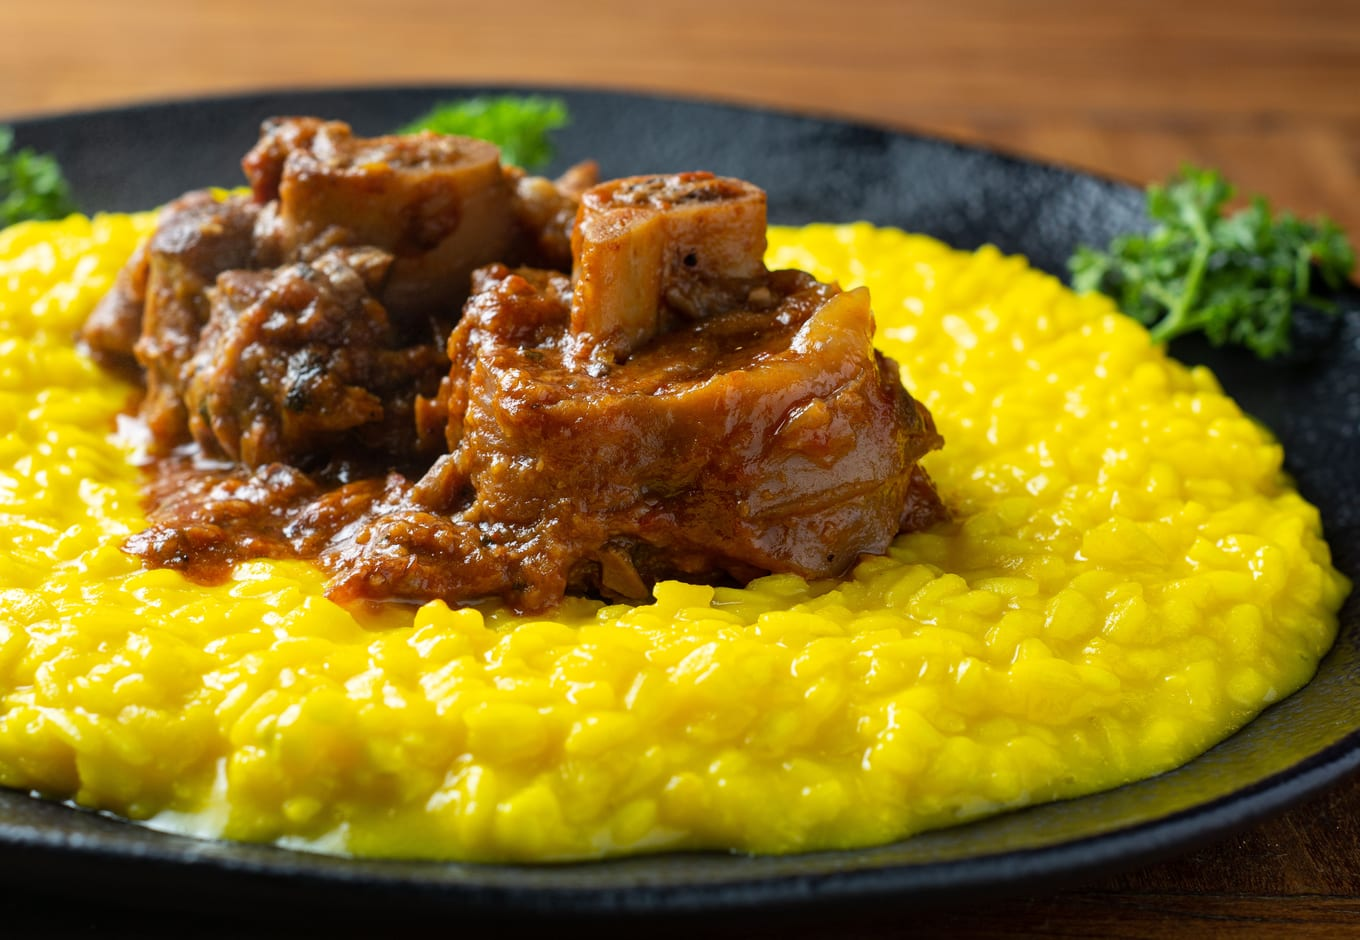 Risotto Alla Milanese served with ossobuco.